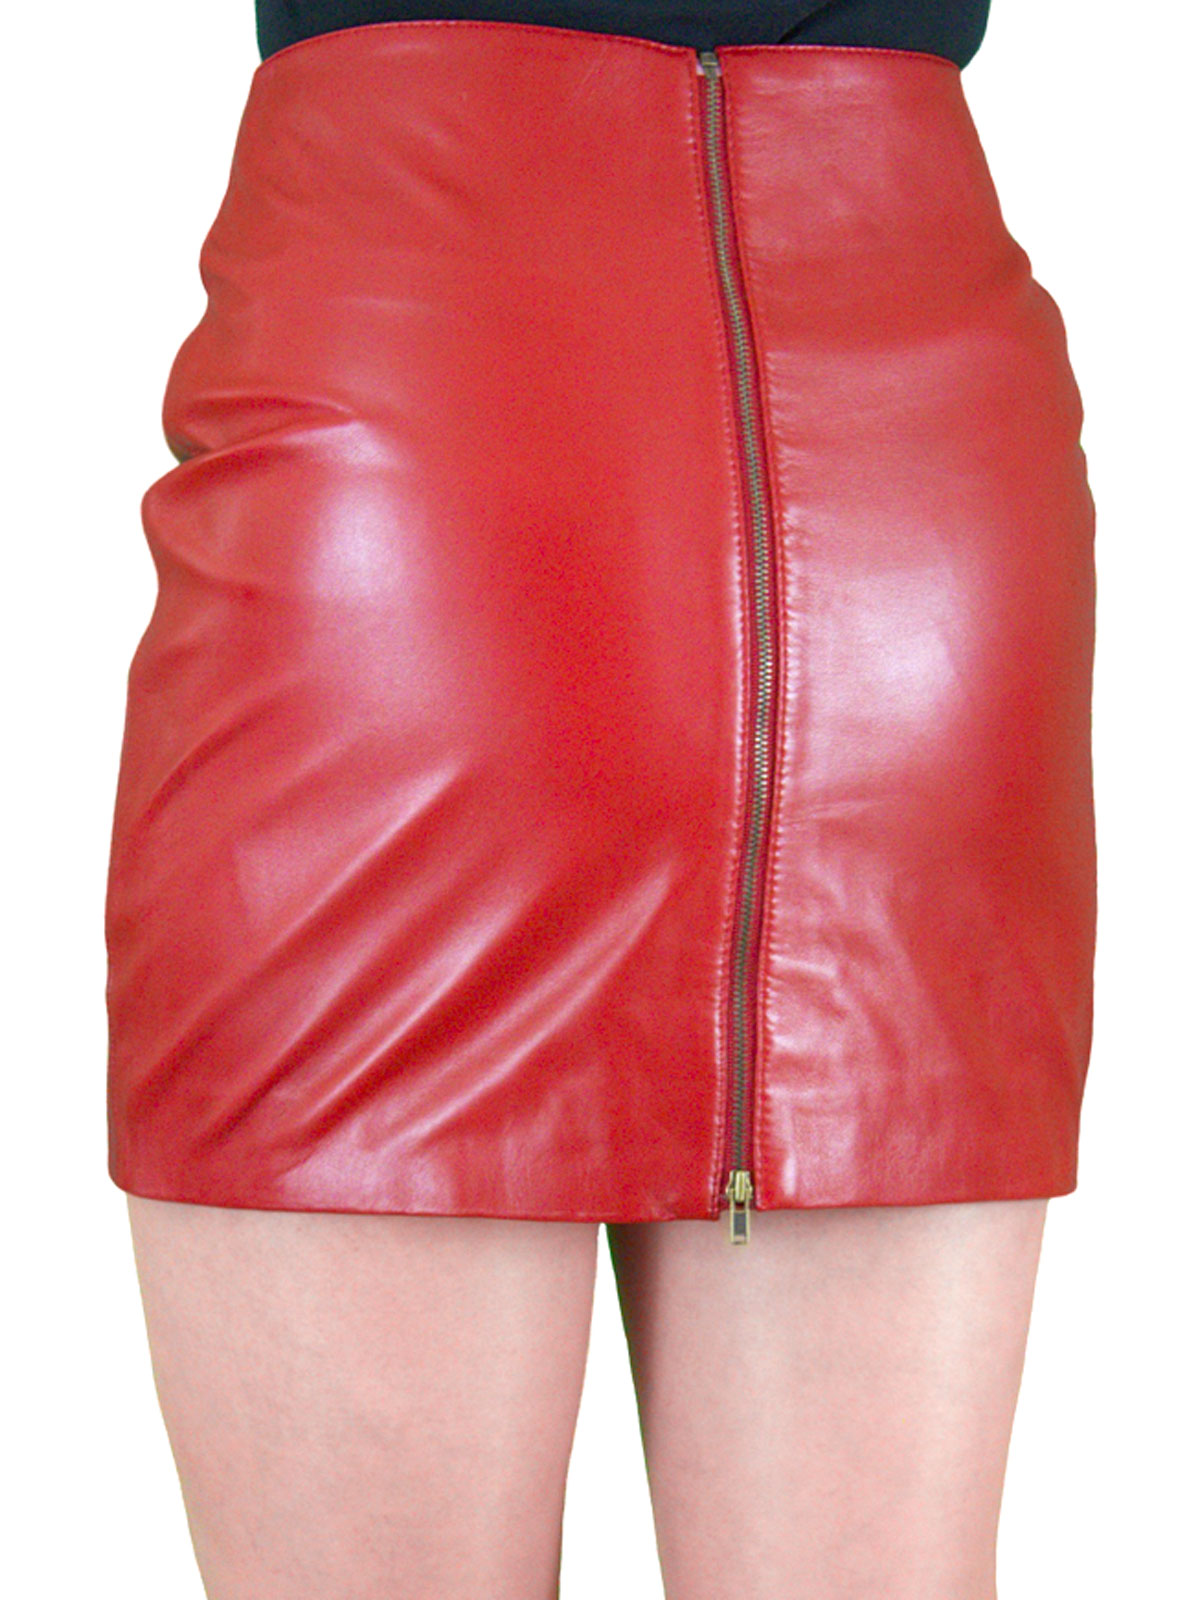 Red Leather Mini Skirt - Dress Ala